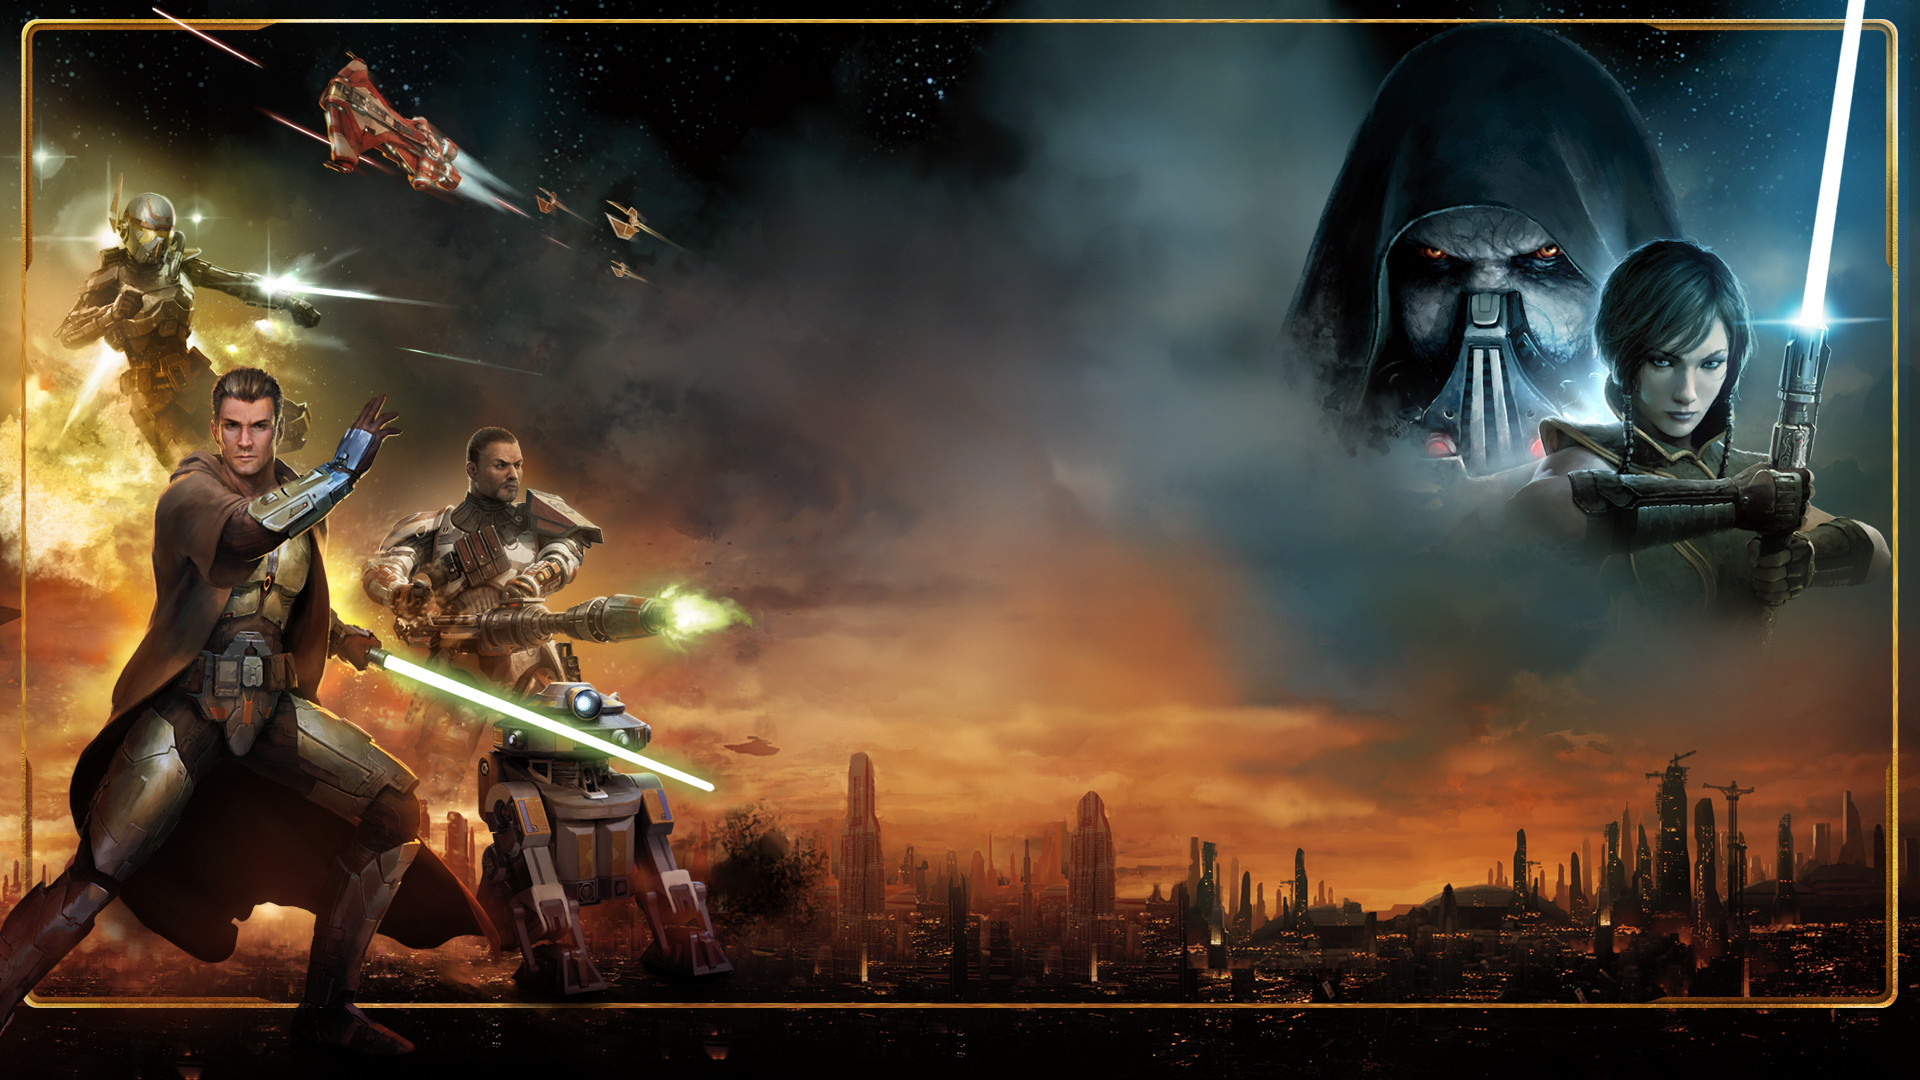 SWTOR Wallpapers 1920×1080